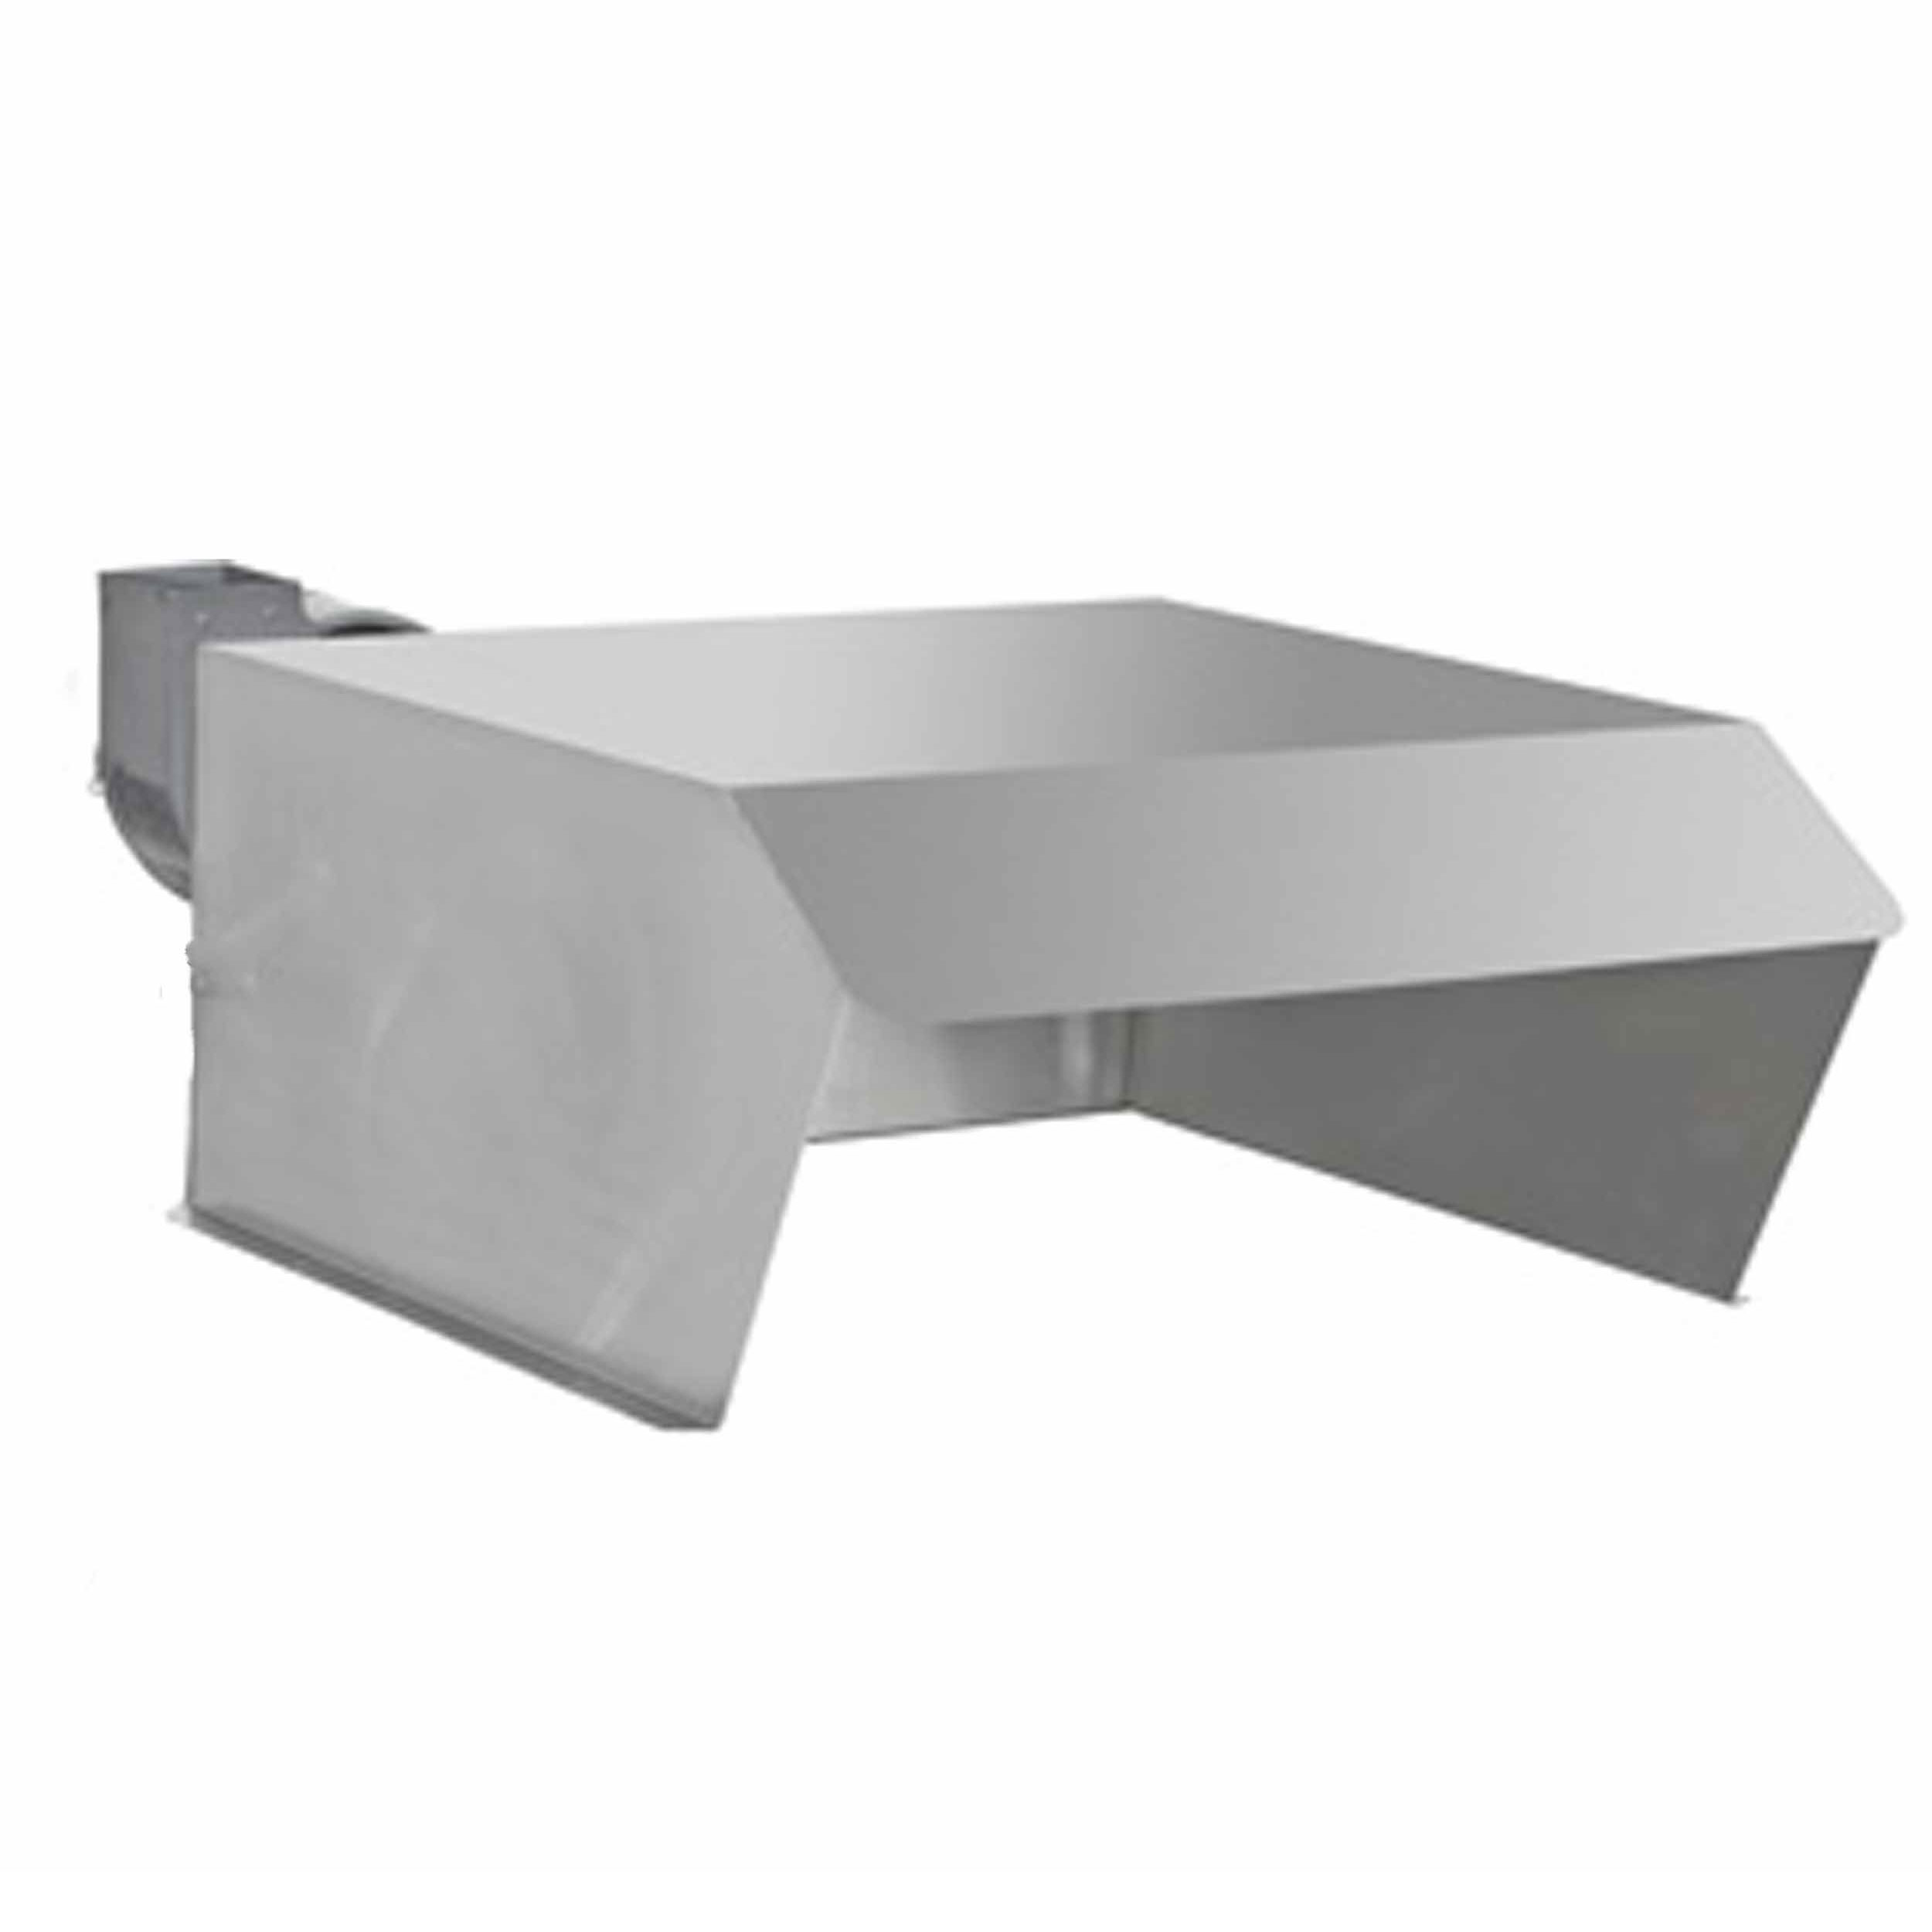 Cookshack PA002 exhaust hood